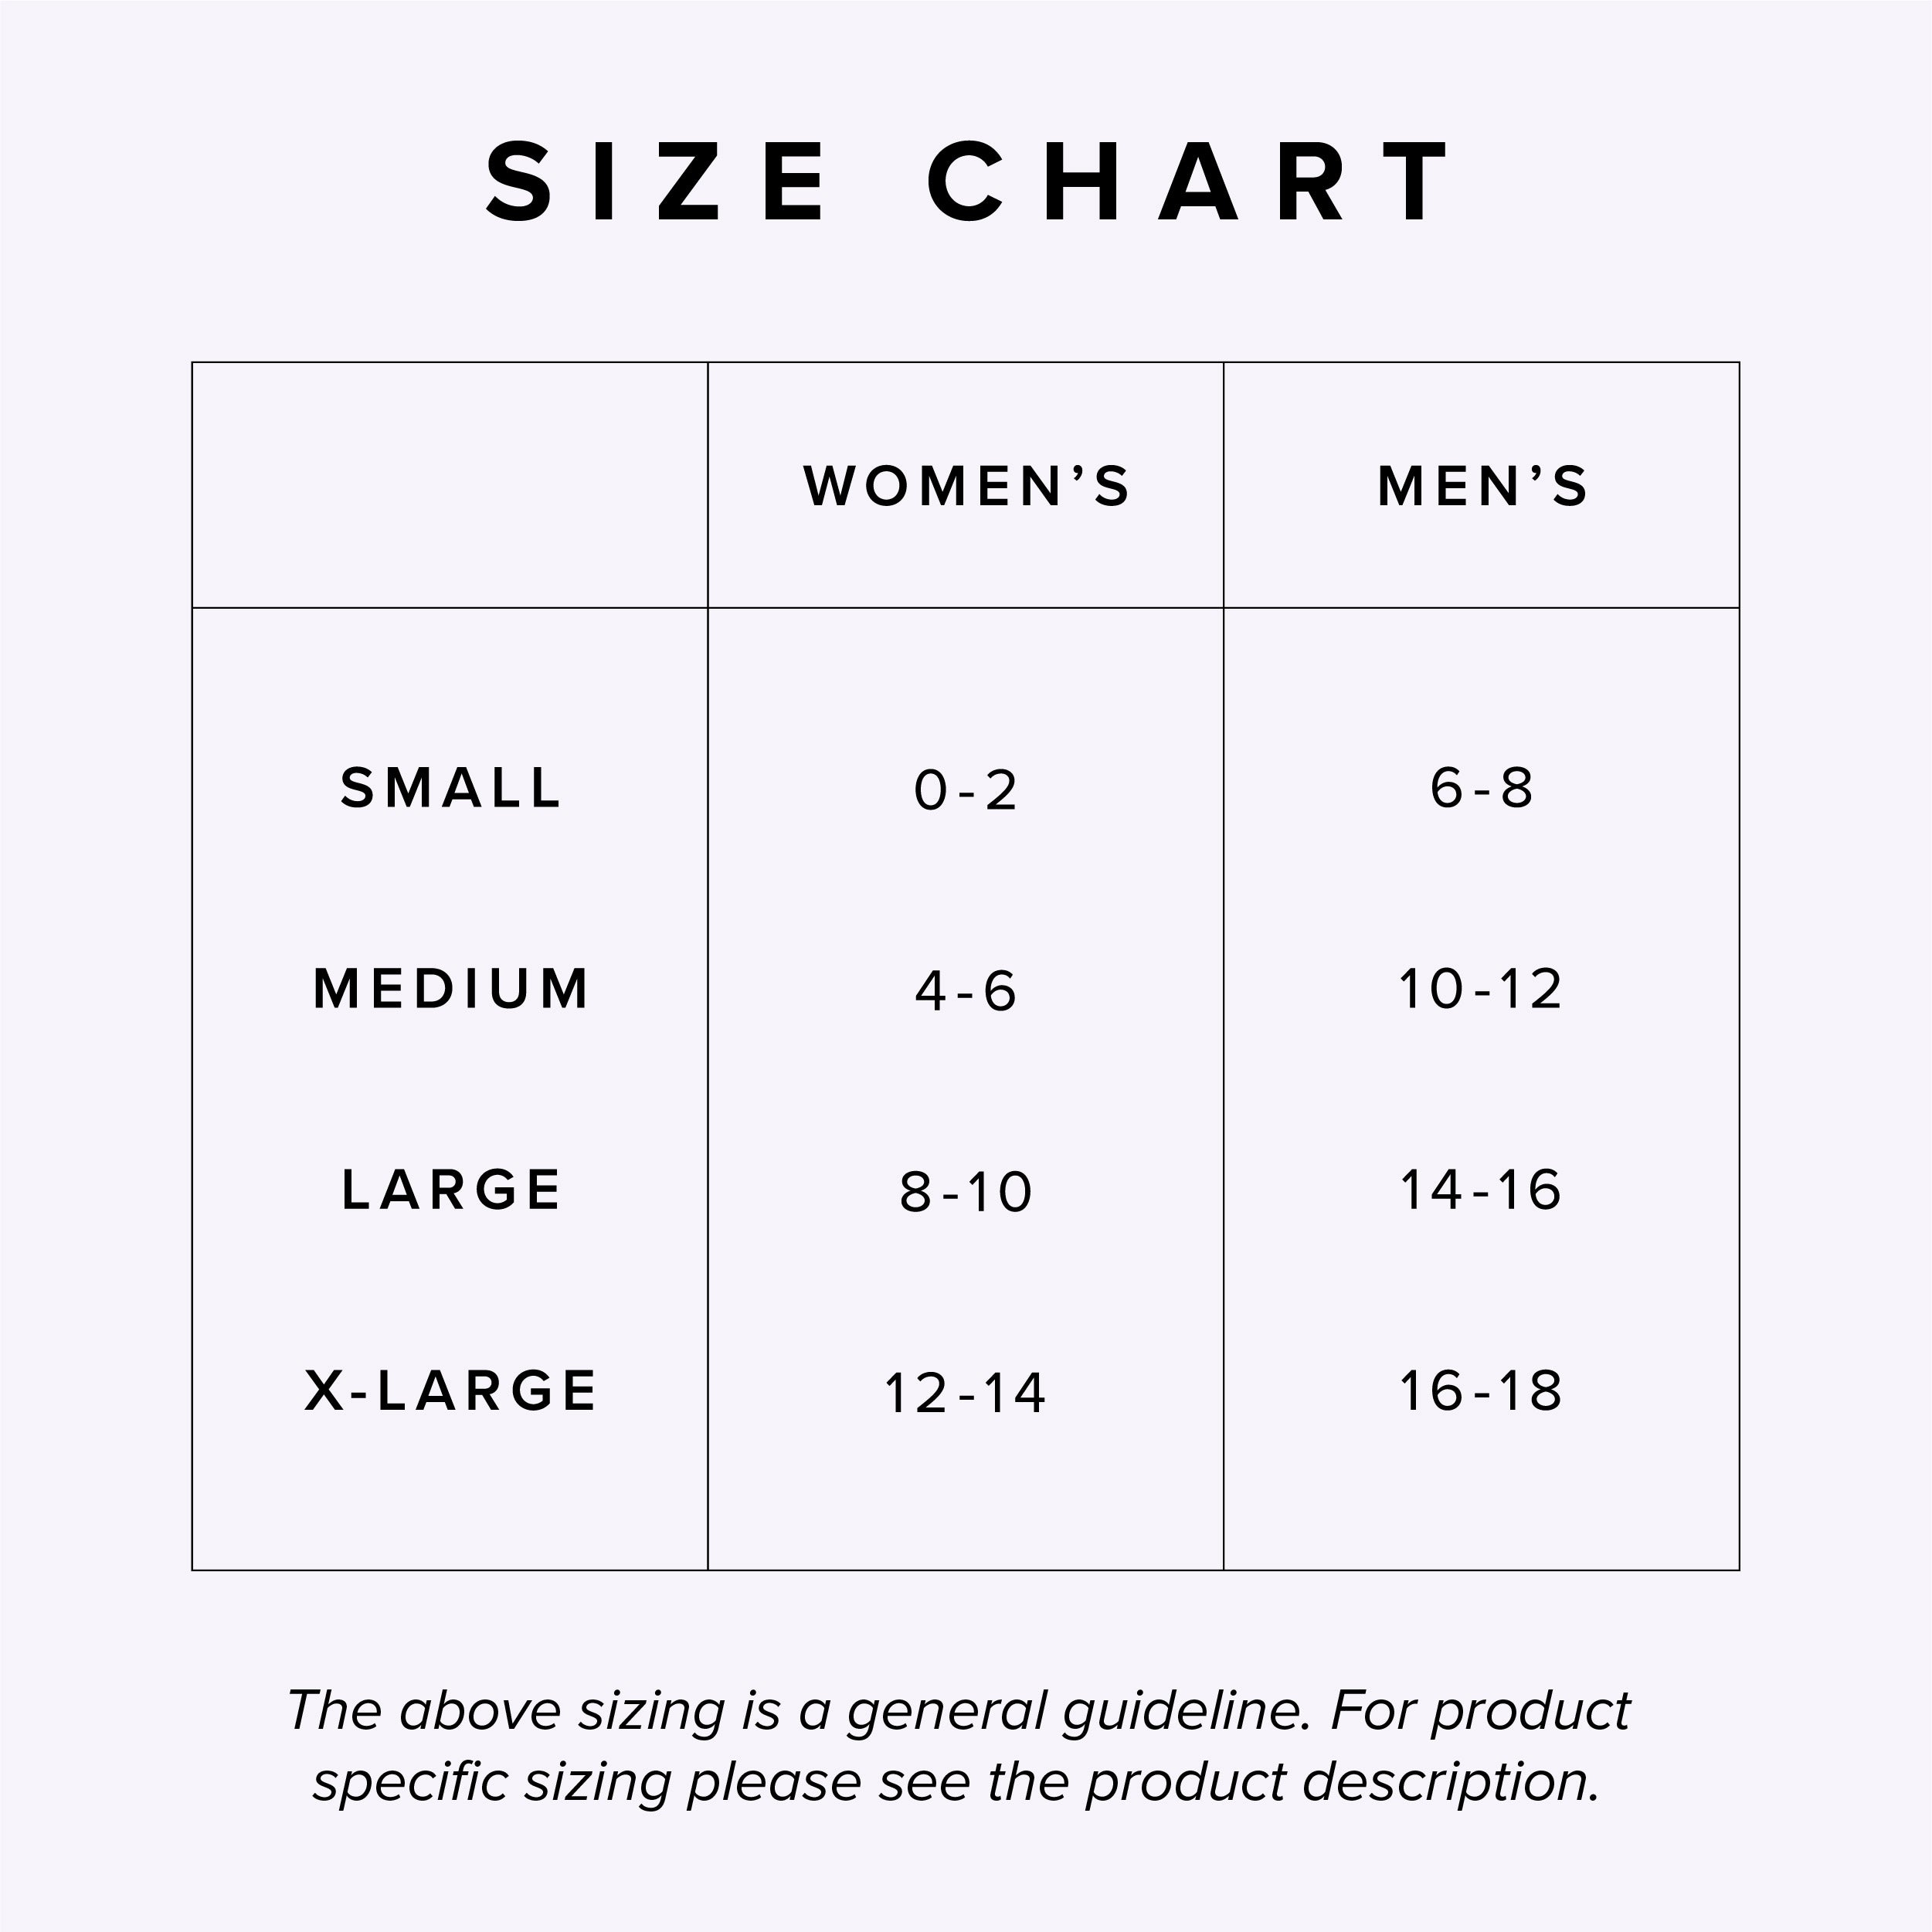 Size Chart - Women's Small 0-2, Medium 4-6, Large 8-10, XL 12-14, Men's Small 6-8, Medium 10-12, Large 14-16, XL 16-18